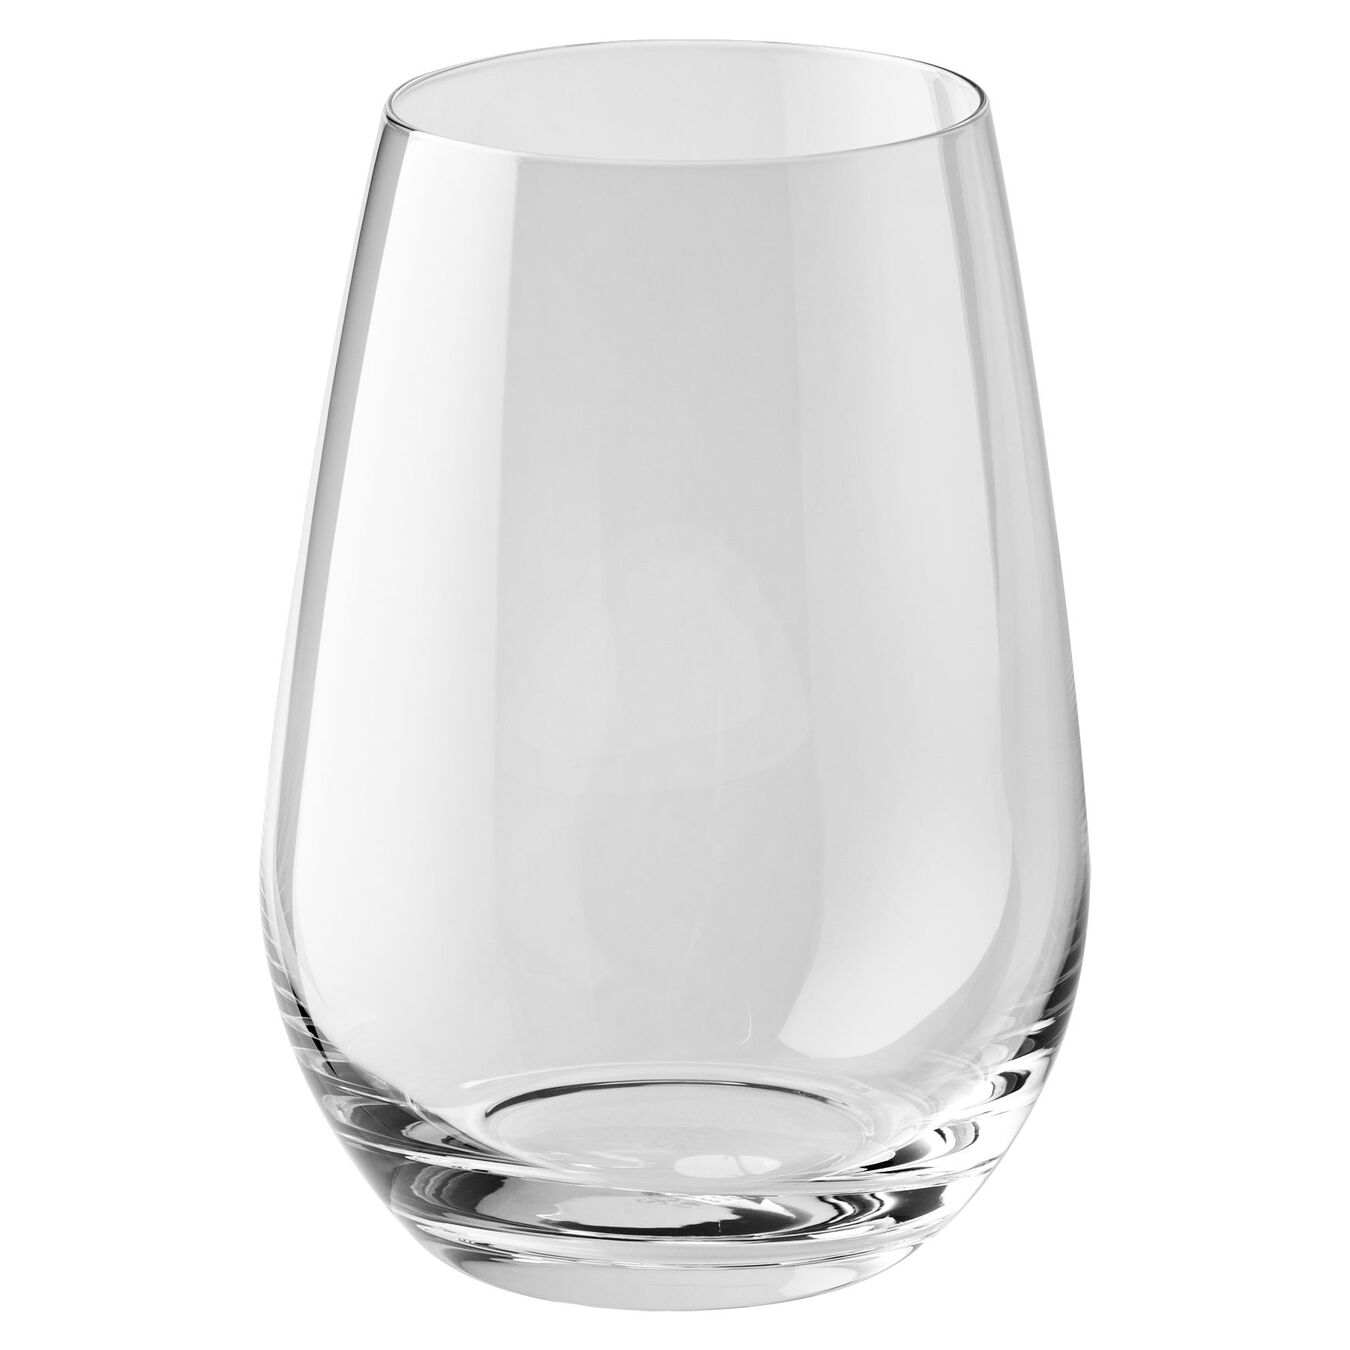 Cocktailglas 575 ml,,large 1